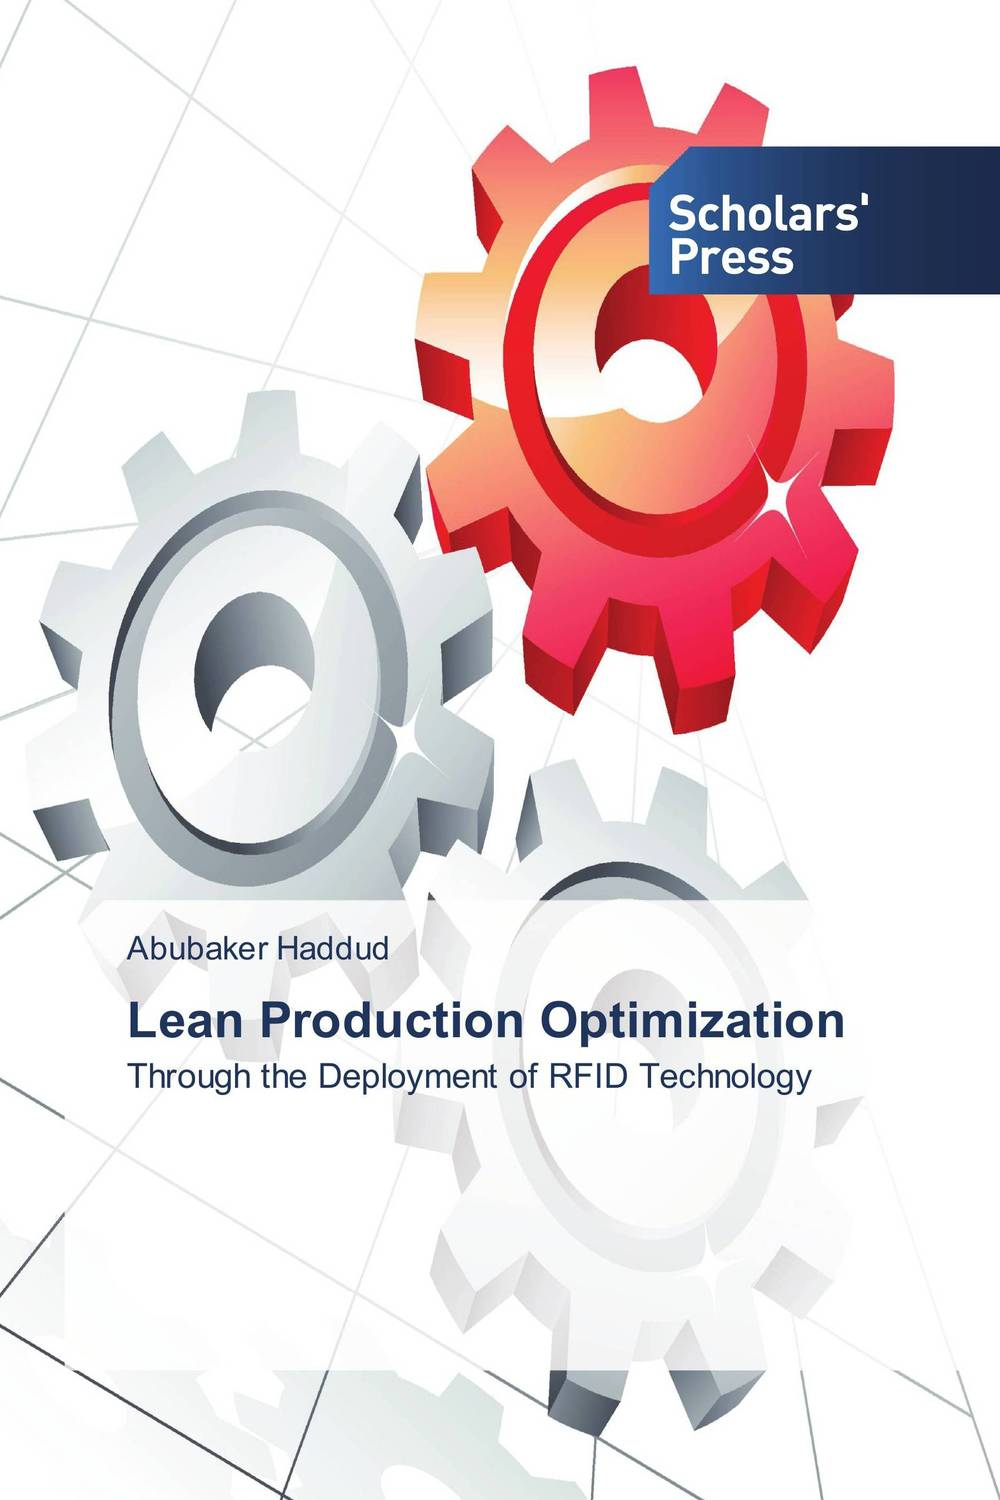 Lean Production Optimization manufacturing defect analysis and waste minimization